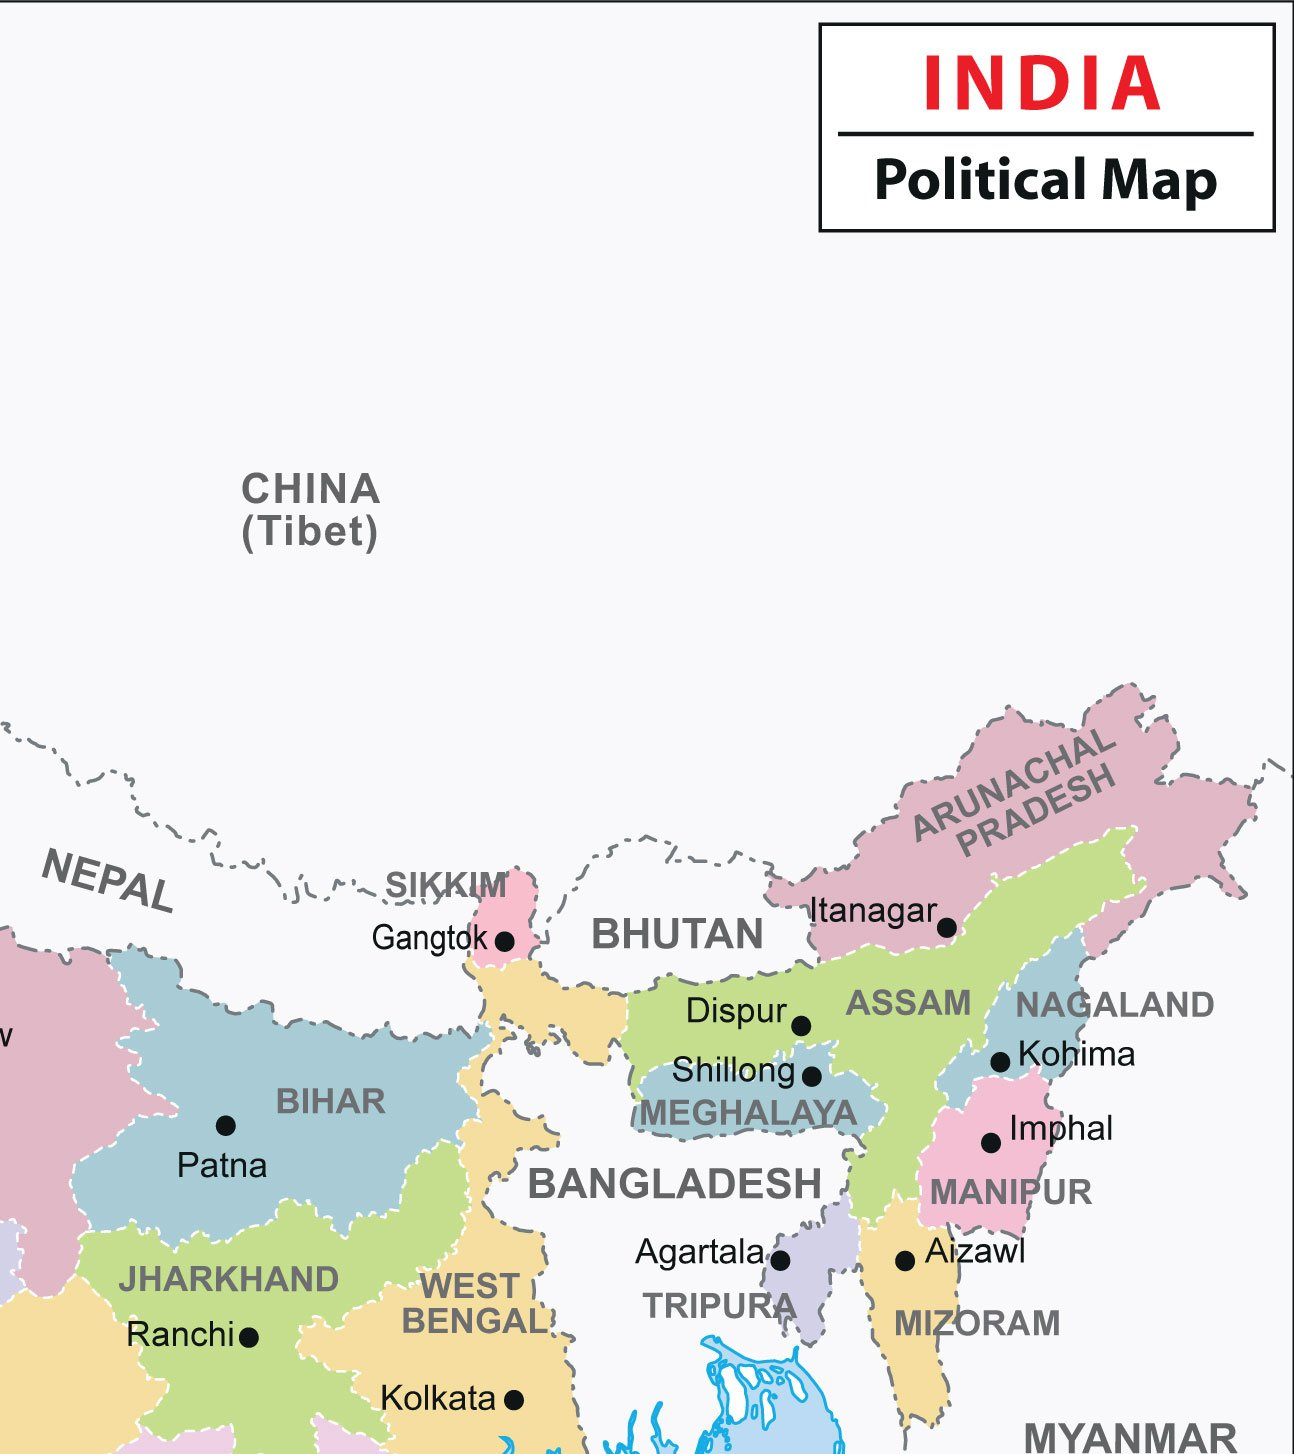 Map Of India Political.India Political Wall Map 27 5x32 Inches Maps Of India Amazon In